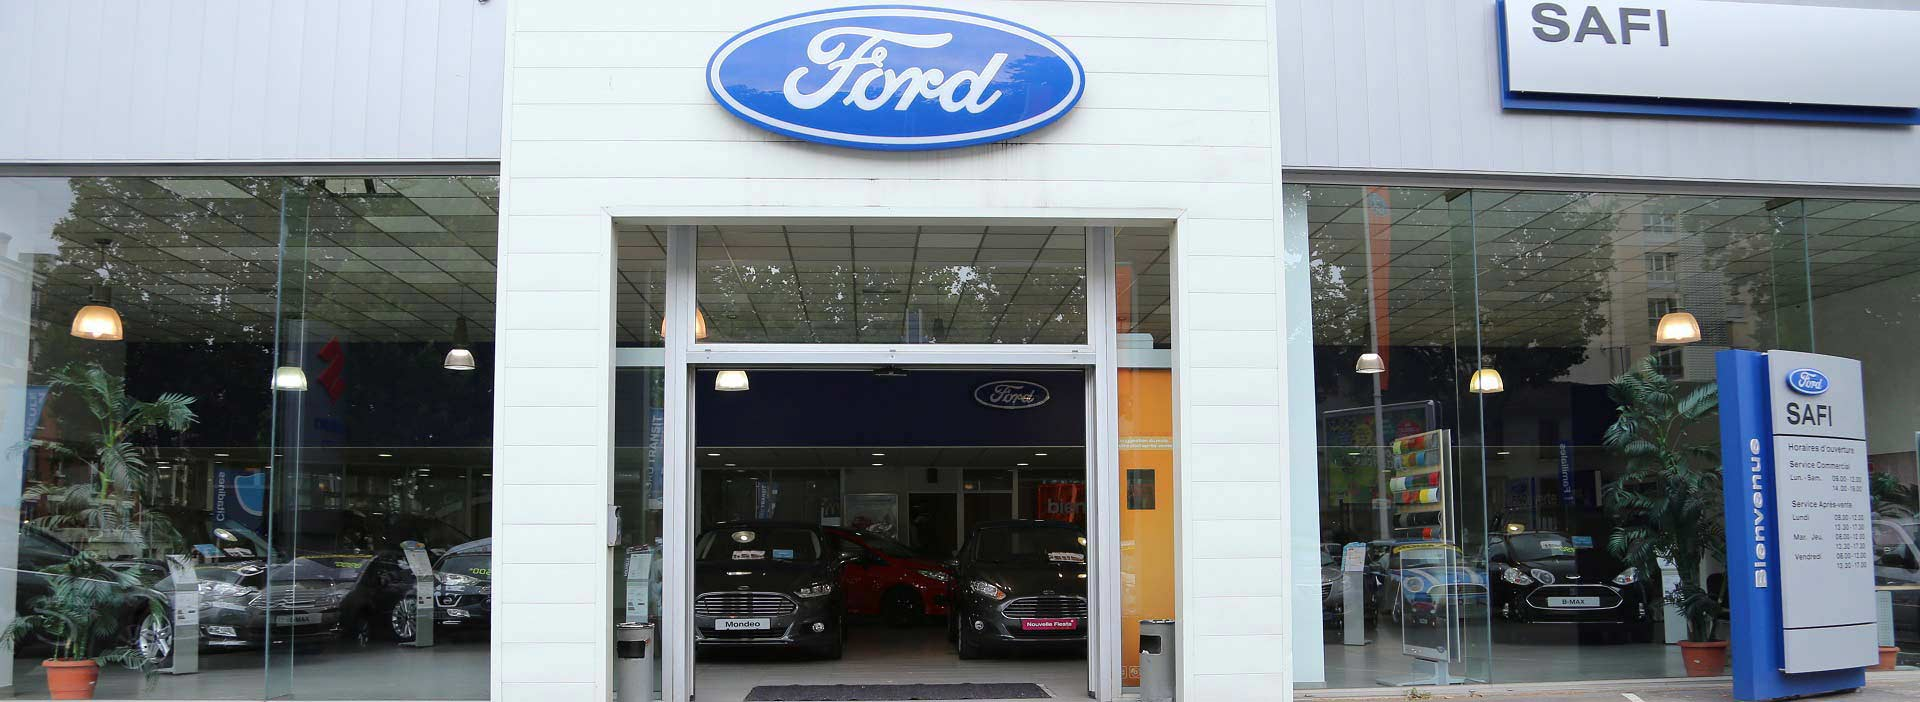 Ford Bagneux